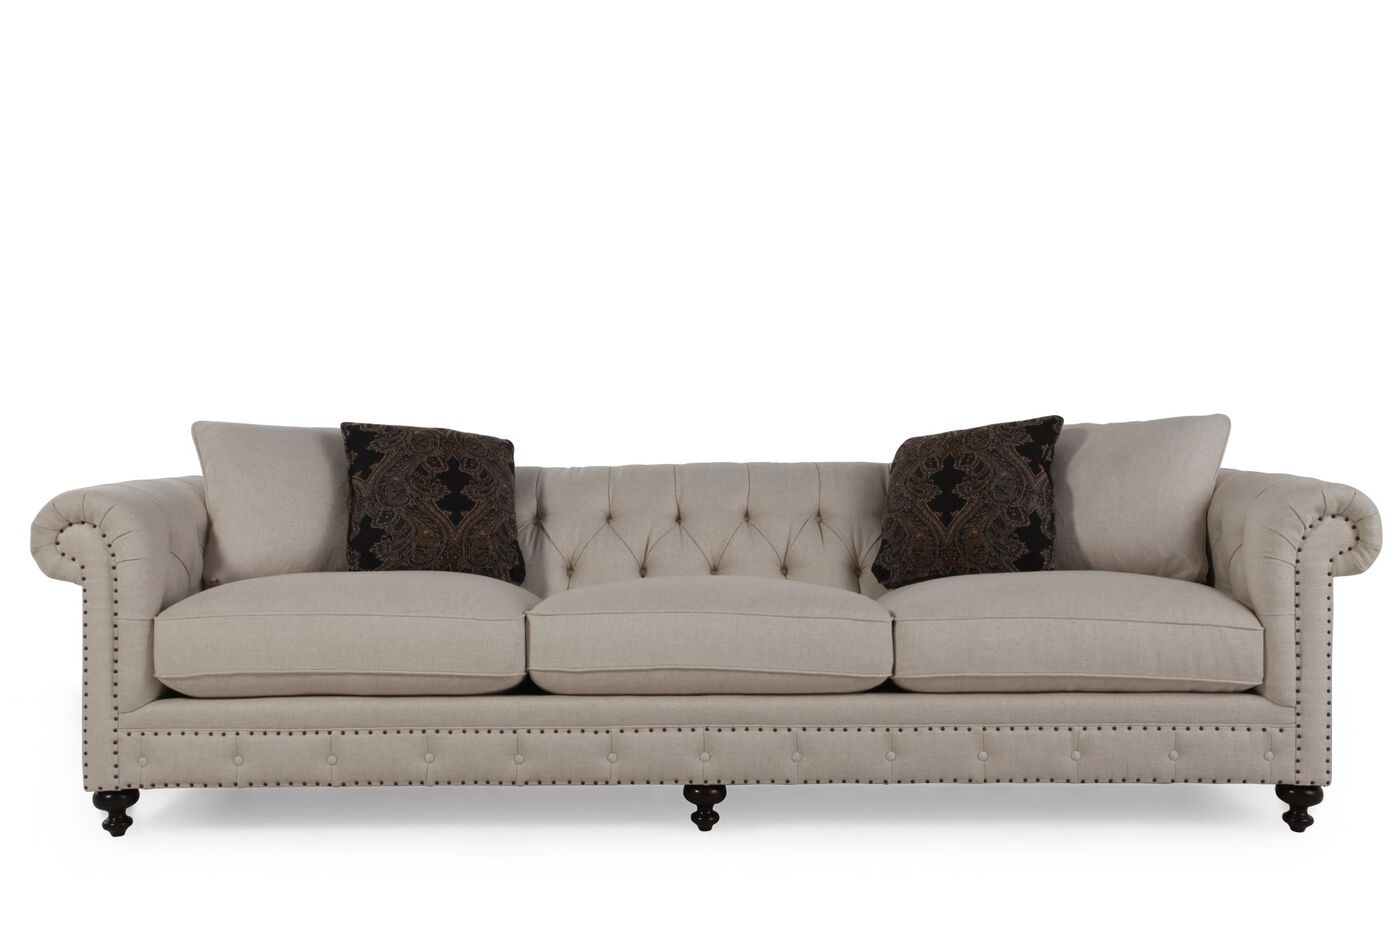 Bernhardt riviera large sofa mathis brothers furniture for Bernhardt furniture